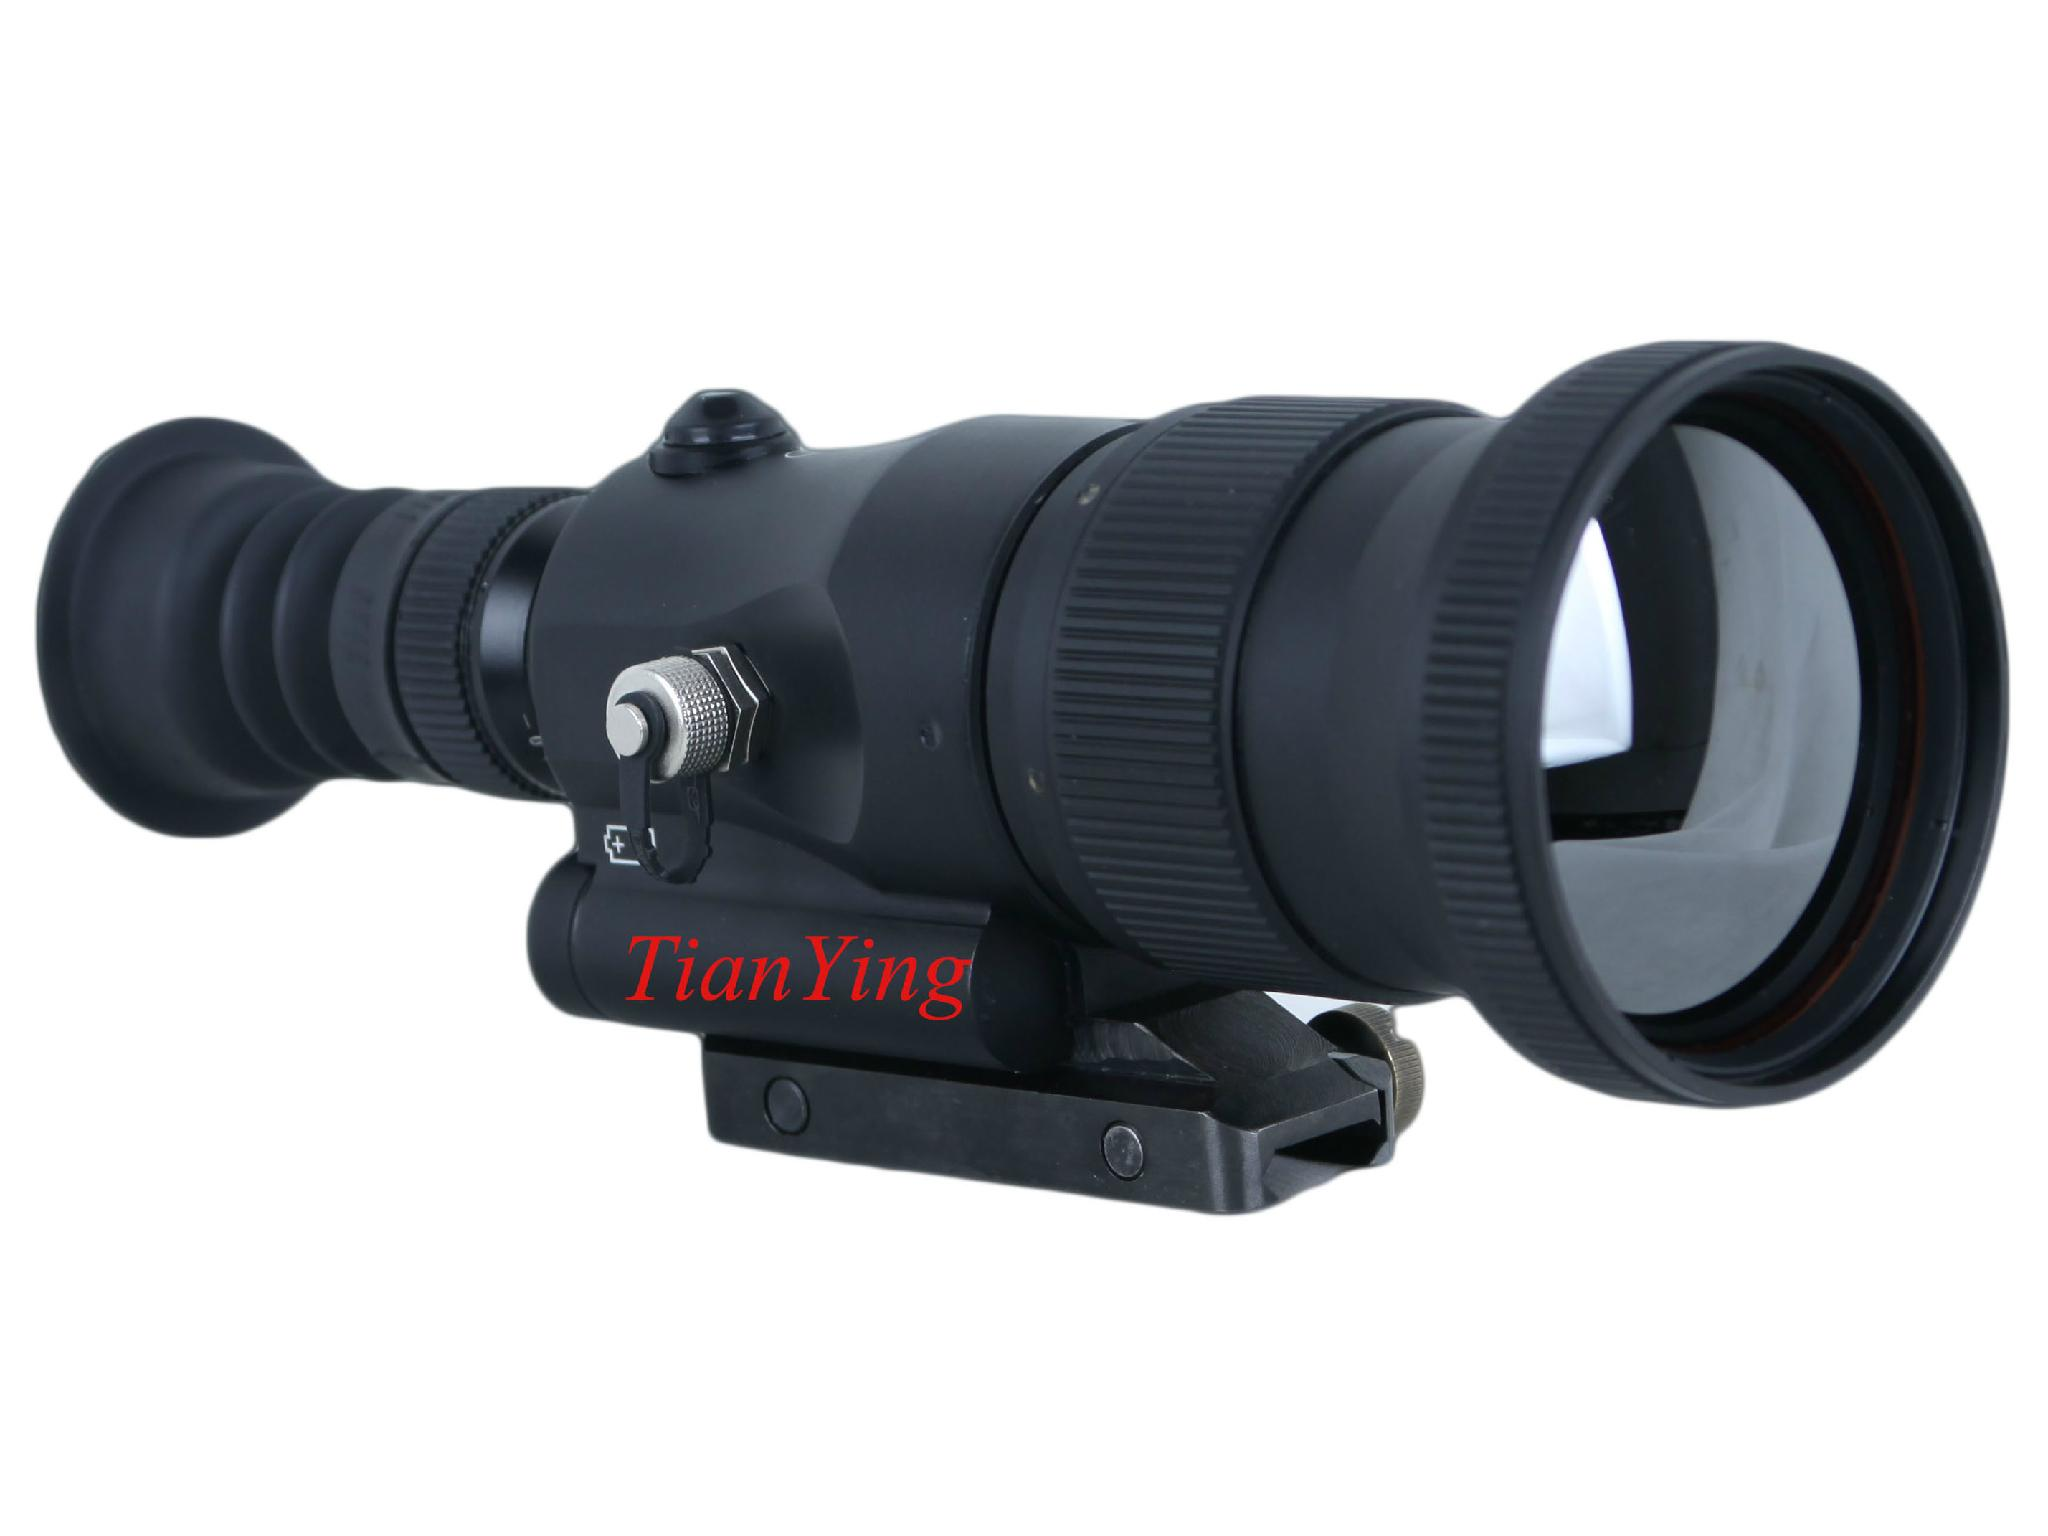 640x512 75mm Lens 1000m Sniper Thermal Weapon Sight monocular thermal telescope